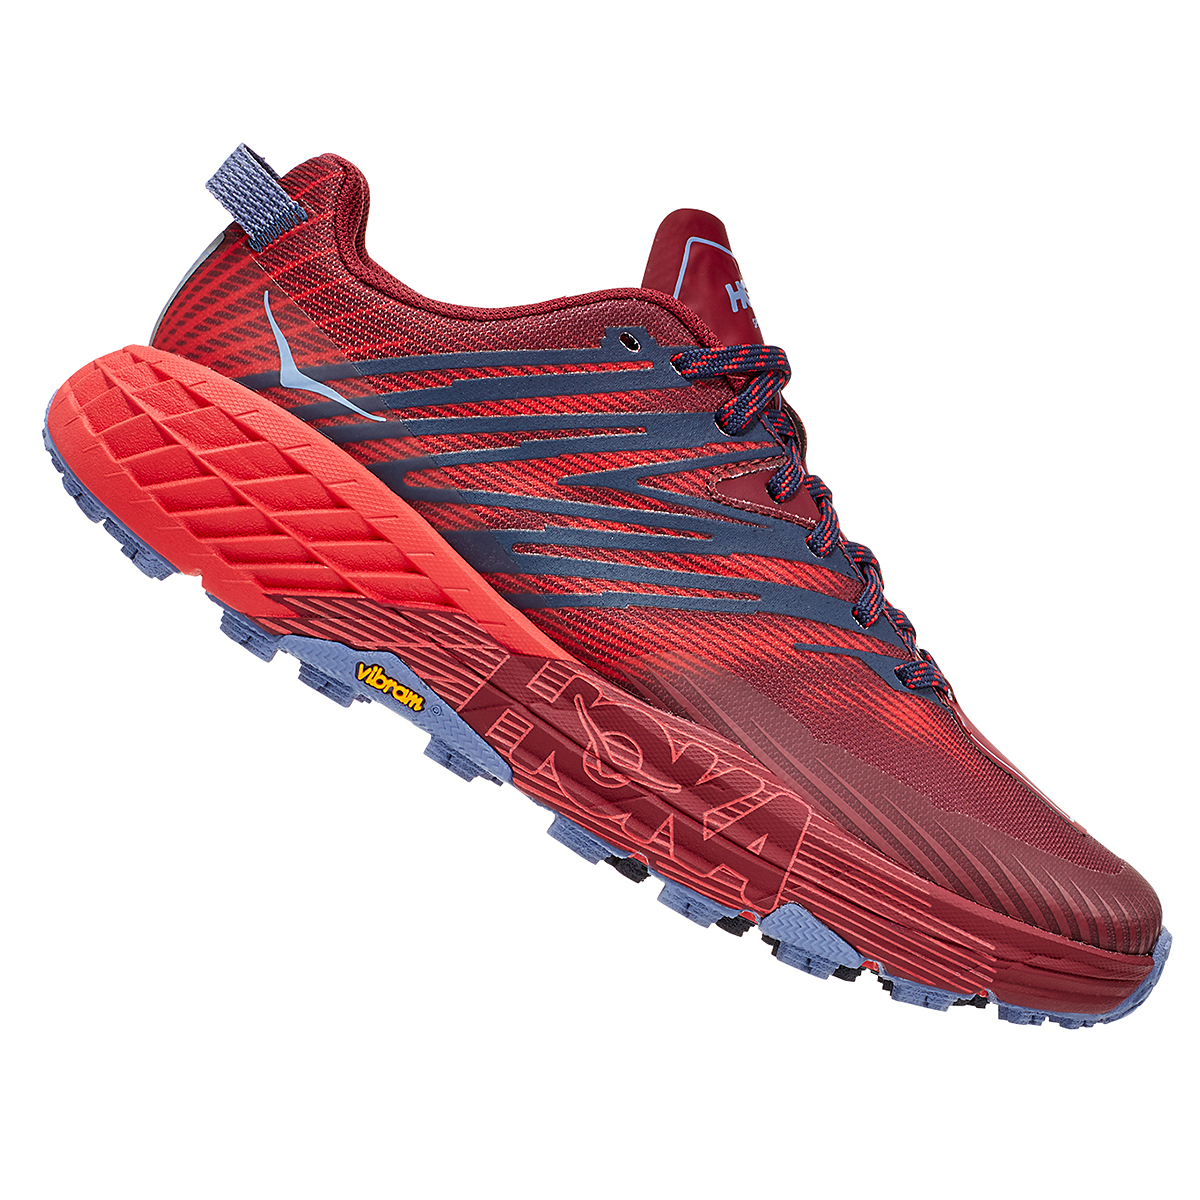 Women's Hoka One One Speedgoat 4 Trail Running Shoe - Color: Cordovan/High Risk Red - Size: 5 - Width: Regular, Cordovan/High Risk Red, large, image 4